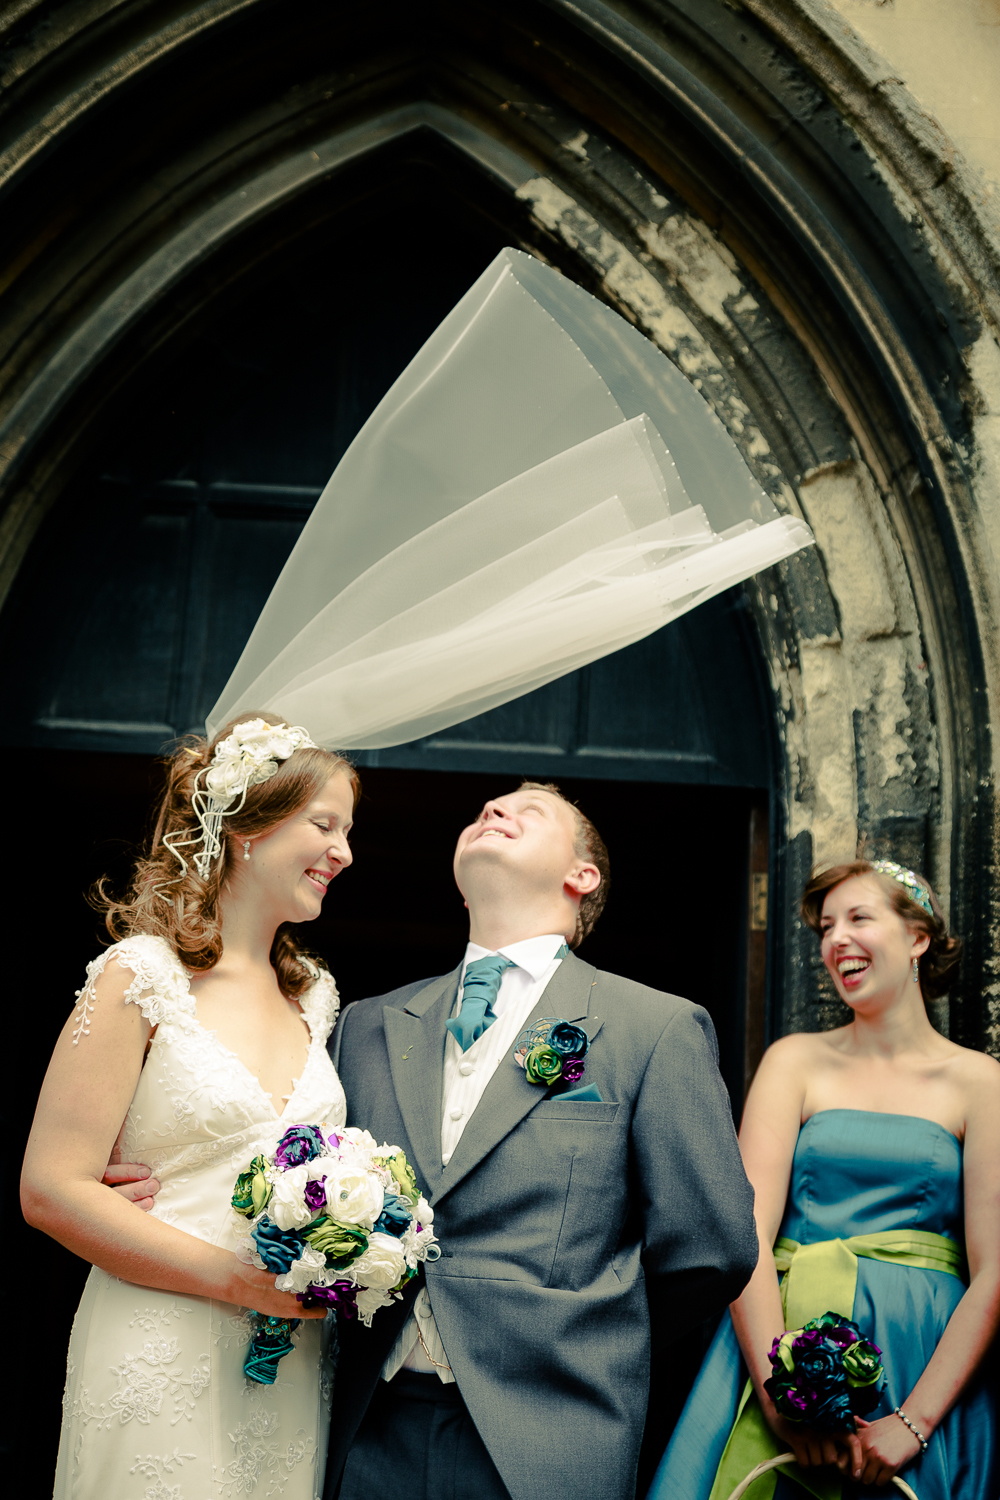 Wedding photography in Cambridge